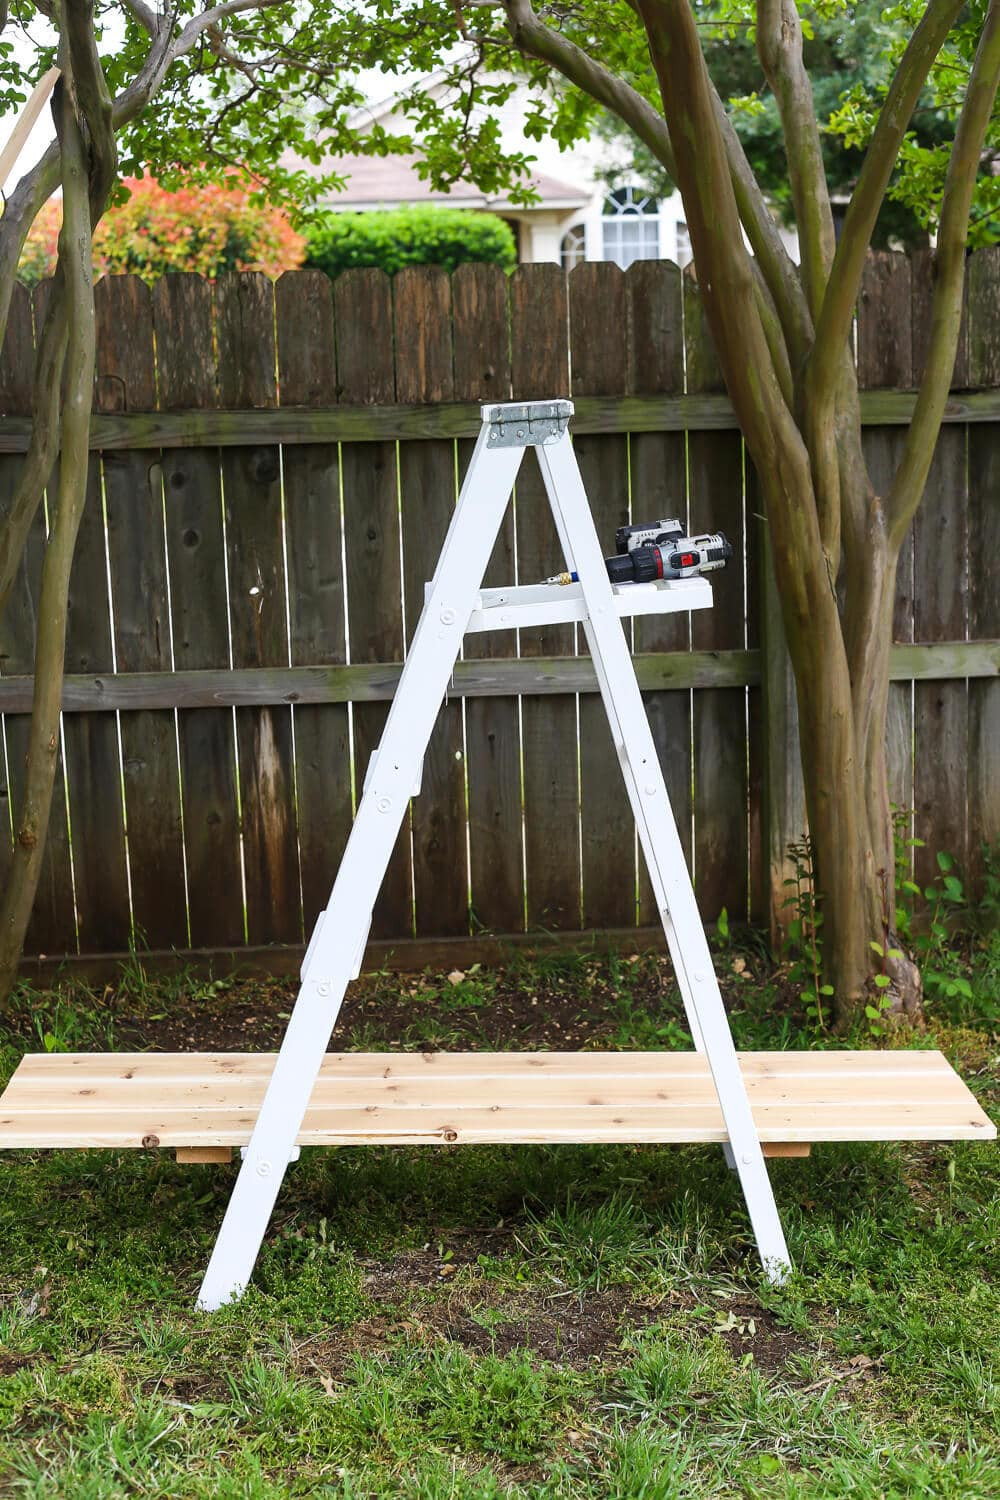 How to quickly and easily build a tiered ladder garden for your backyard. It's so simple, and it looks absolutely gorgeous. Plus, great tips and tricks for planting succulents and other flowers. Fantastic idea for a backyard decoration!